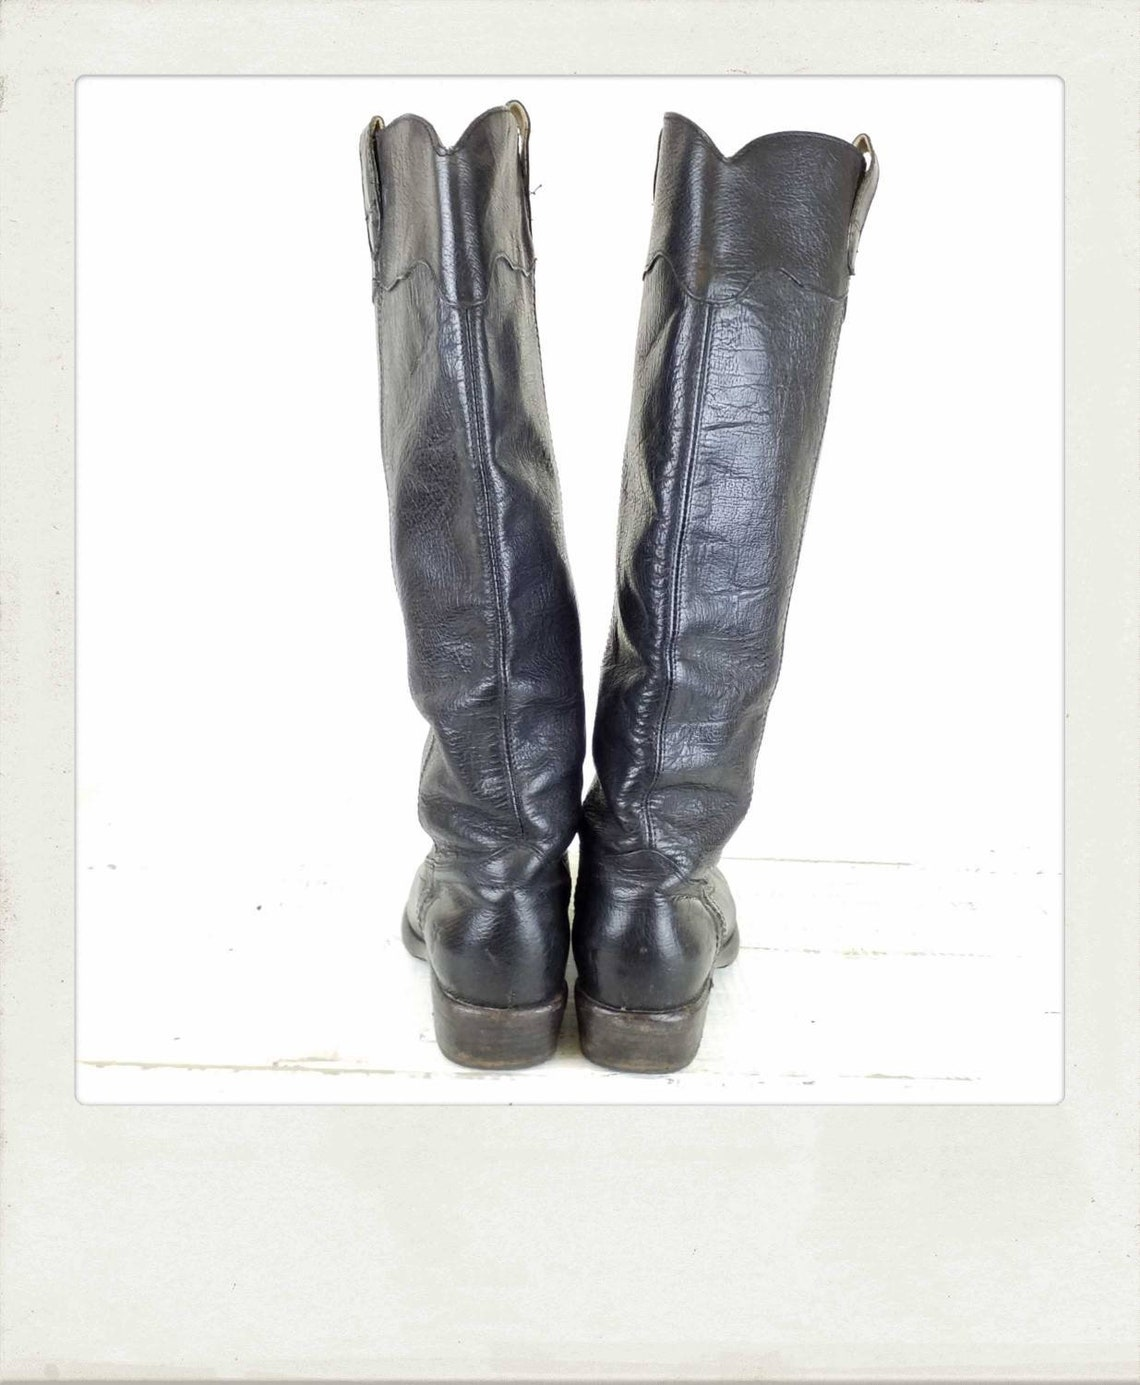 Vintage FRYE Womans Black Leather Pull On Riding Boots / Western Boots / Size 8.5 US